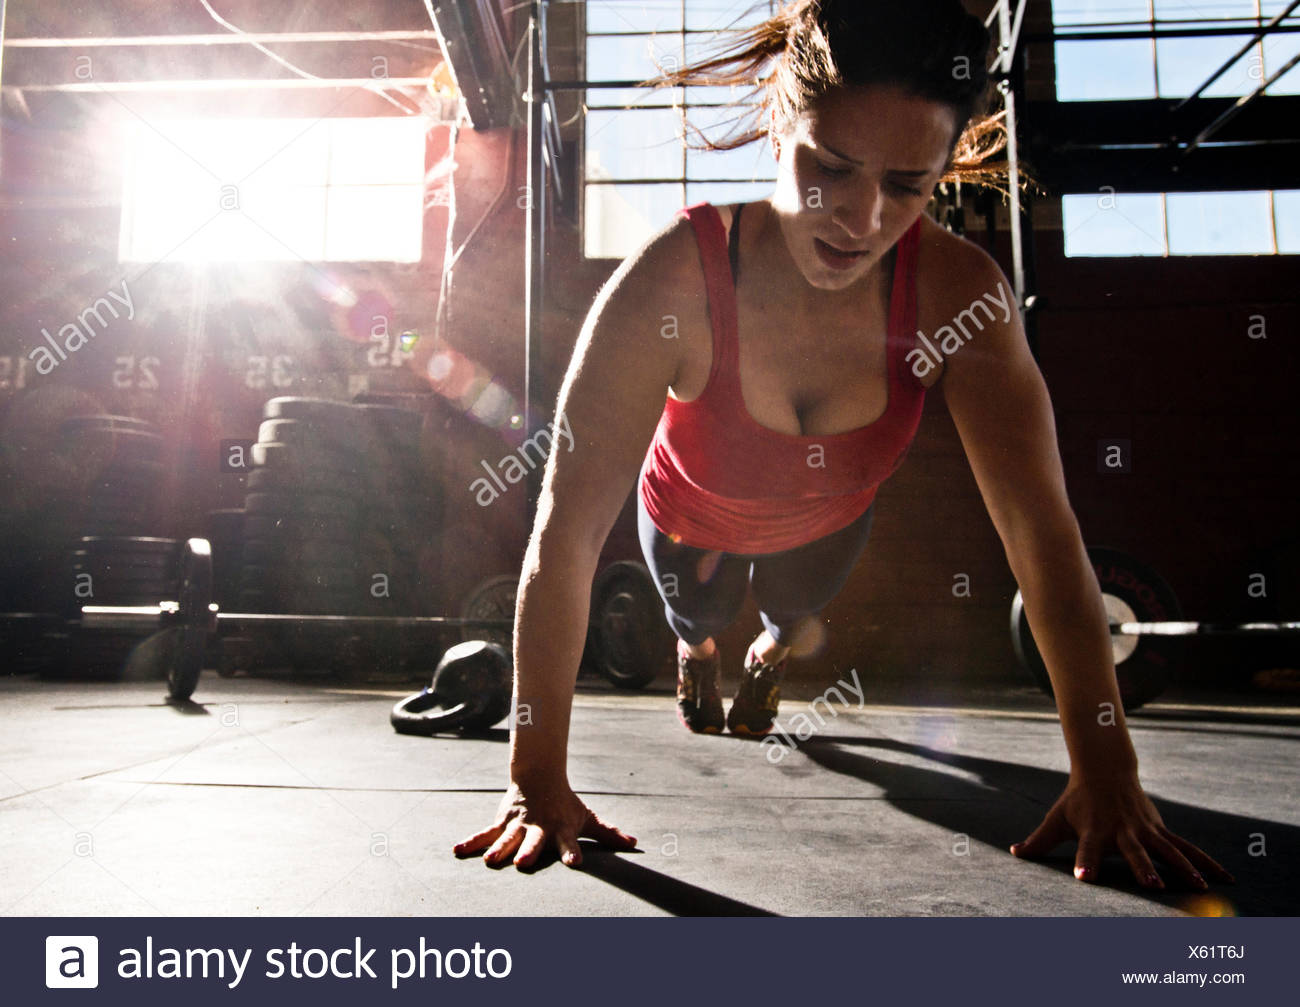 A crossfit athlete performs a push-up. - Stock Image